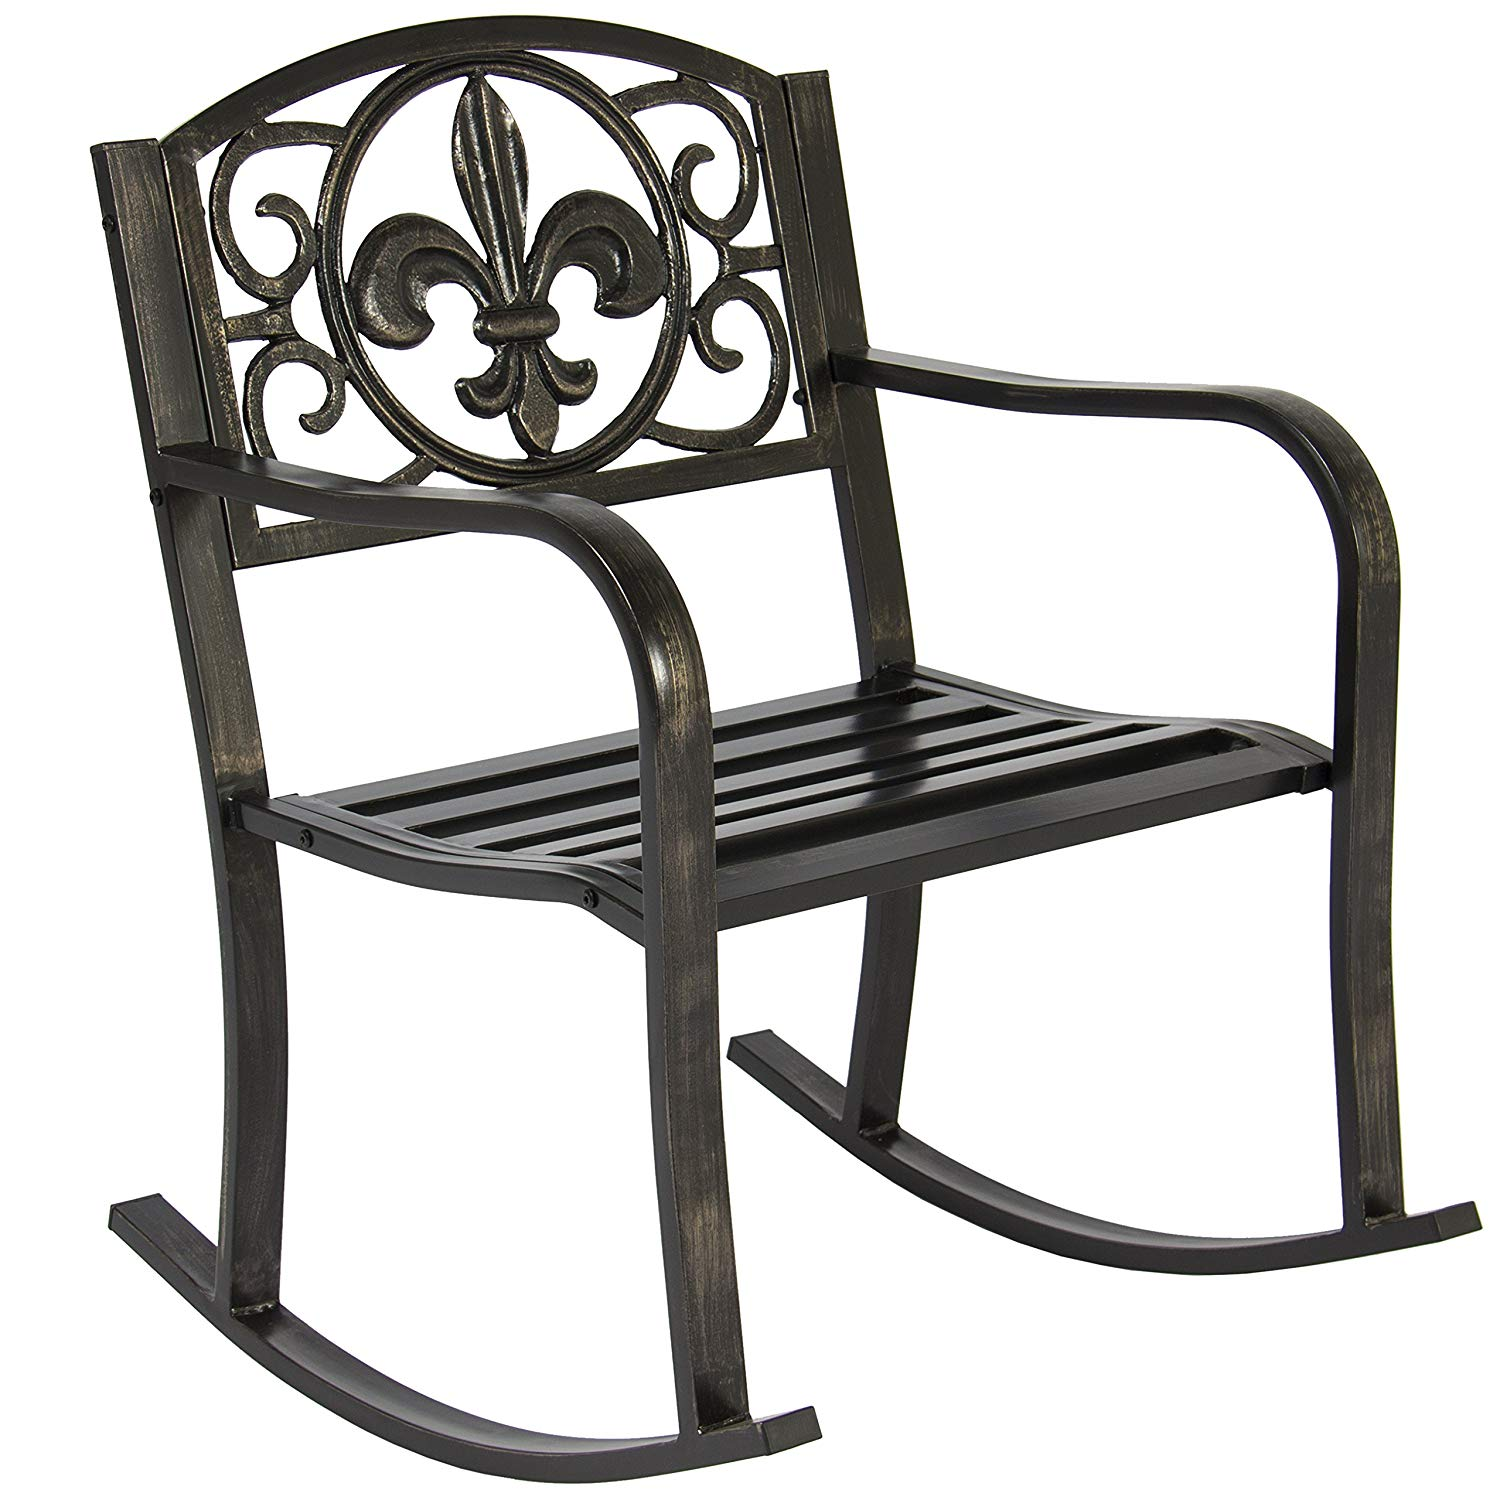 patio rocking chairs amazon.com : best choice products metal rocking chair seat for patio, OAKKVLR